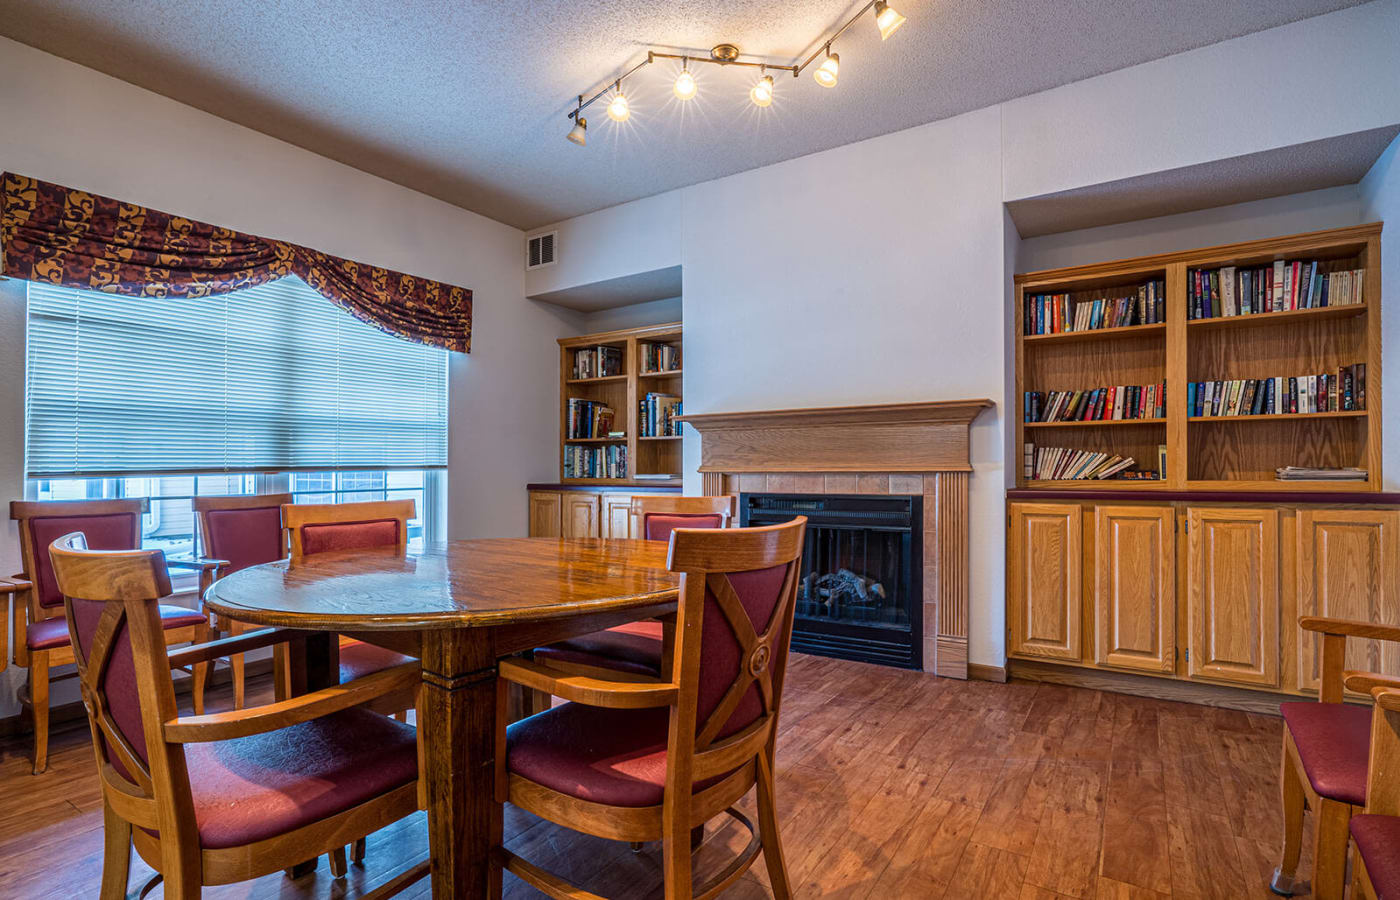 Activity room with puzzles and a fireplace at Traditions of Owatonna in Owatonna, Minnesota